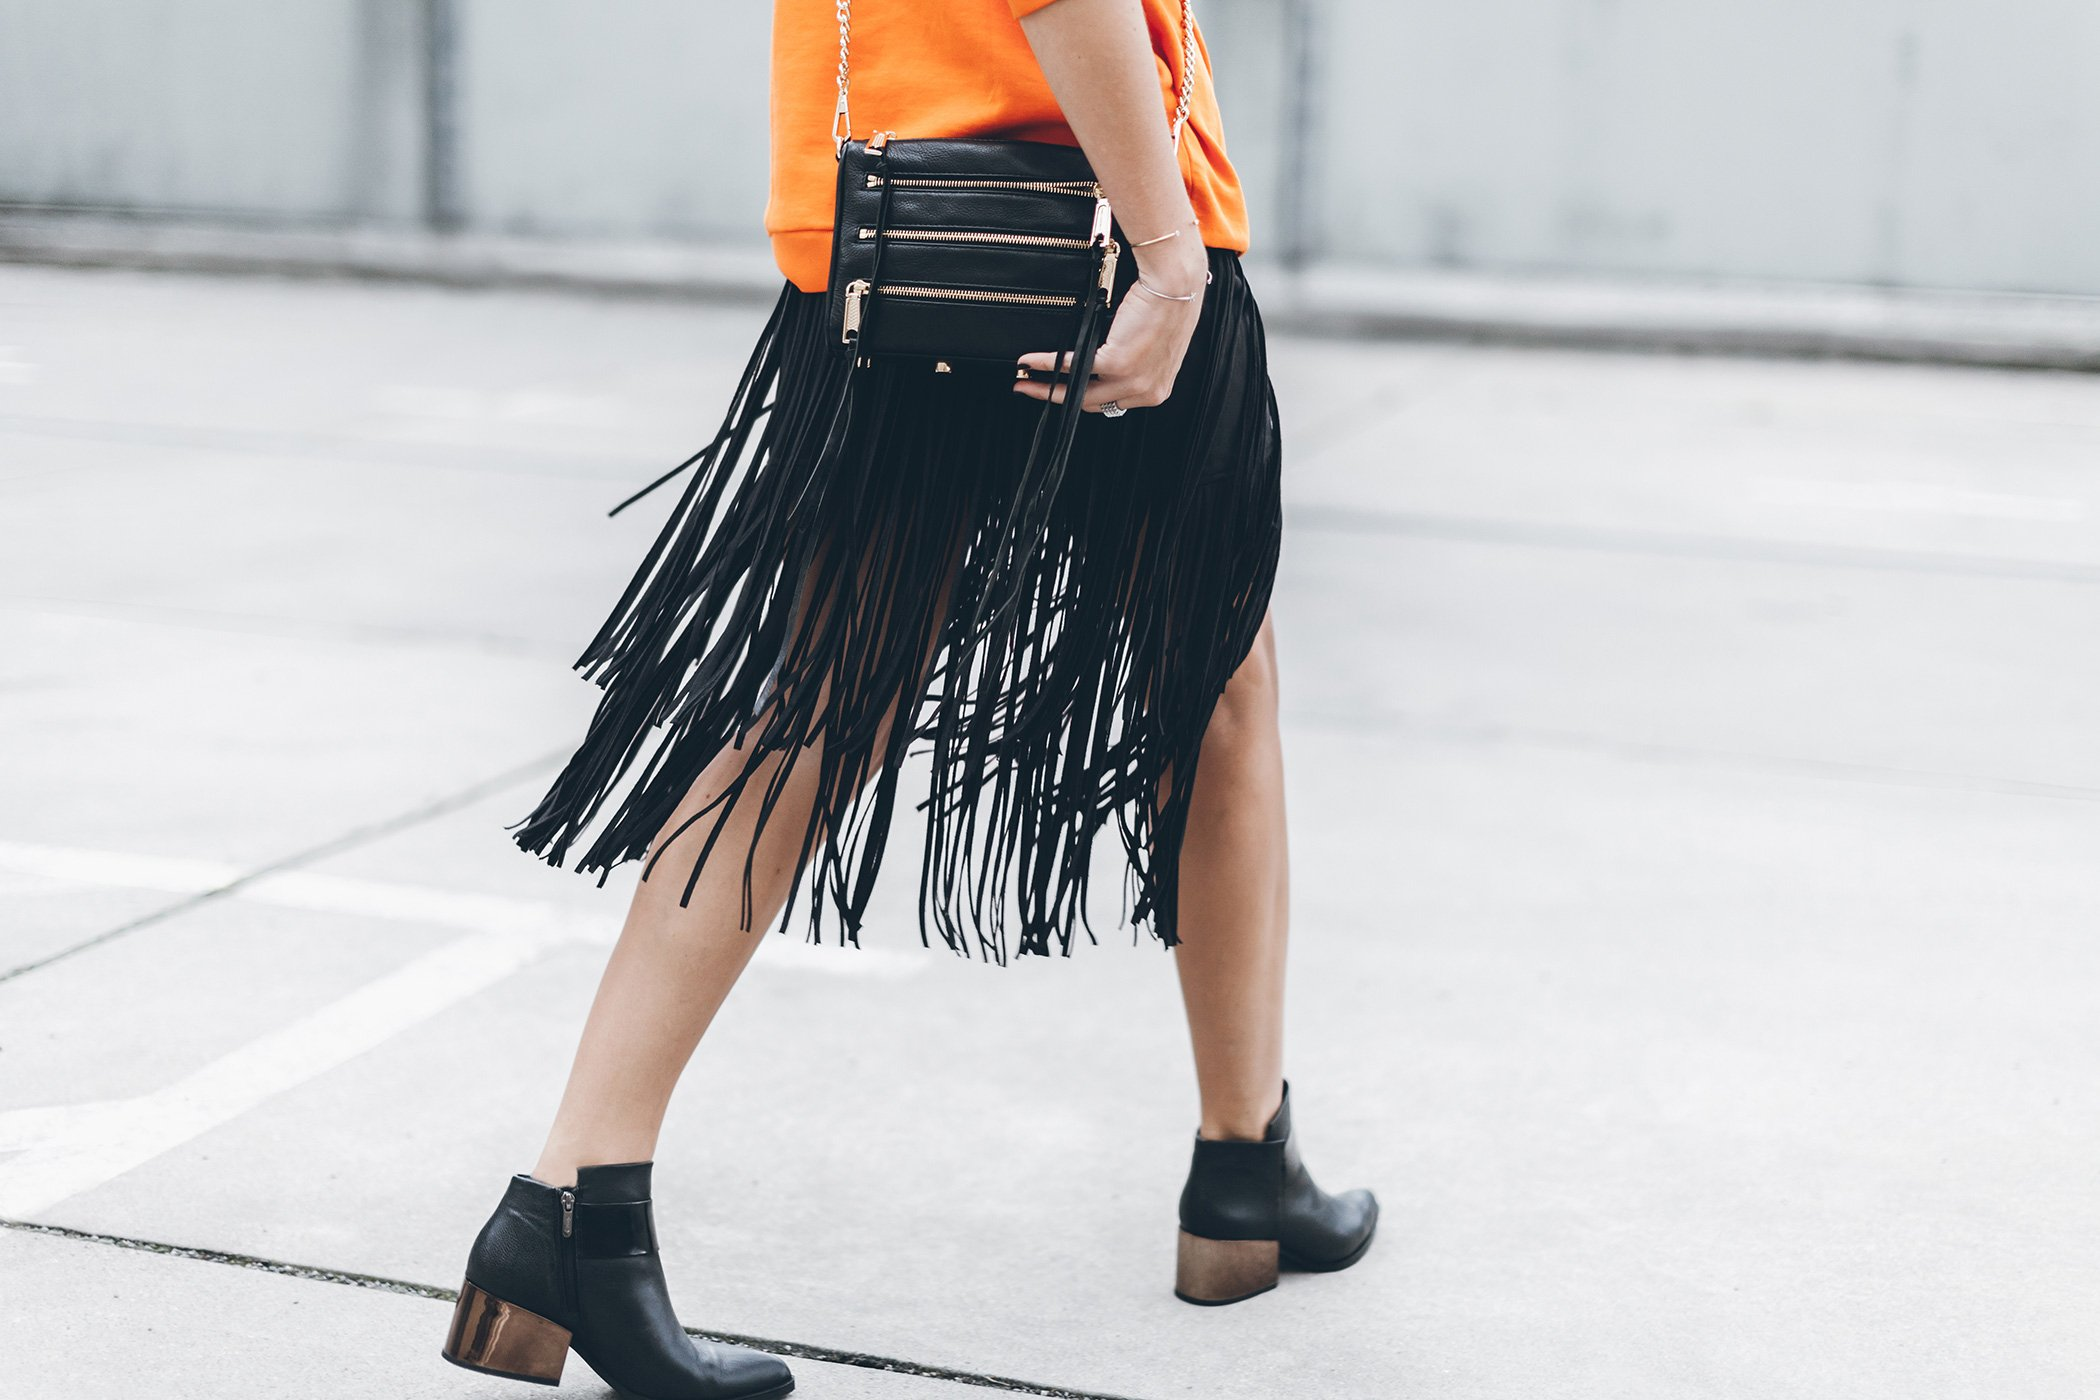 mikuta-fringe-skirt-orange-sweater-5